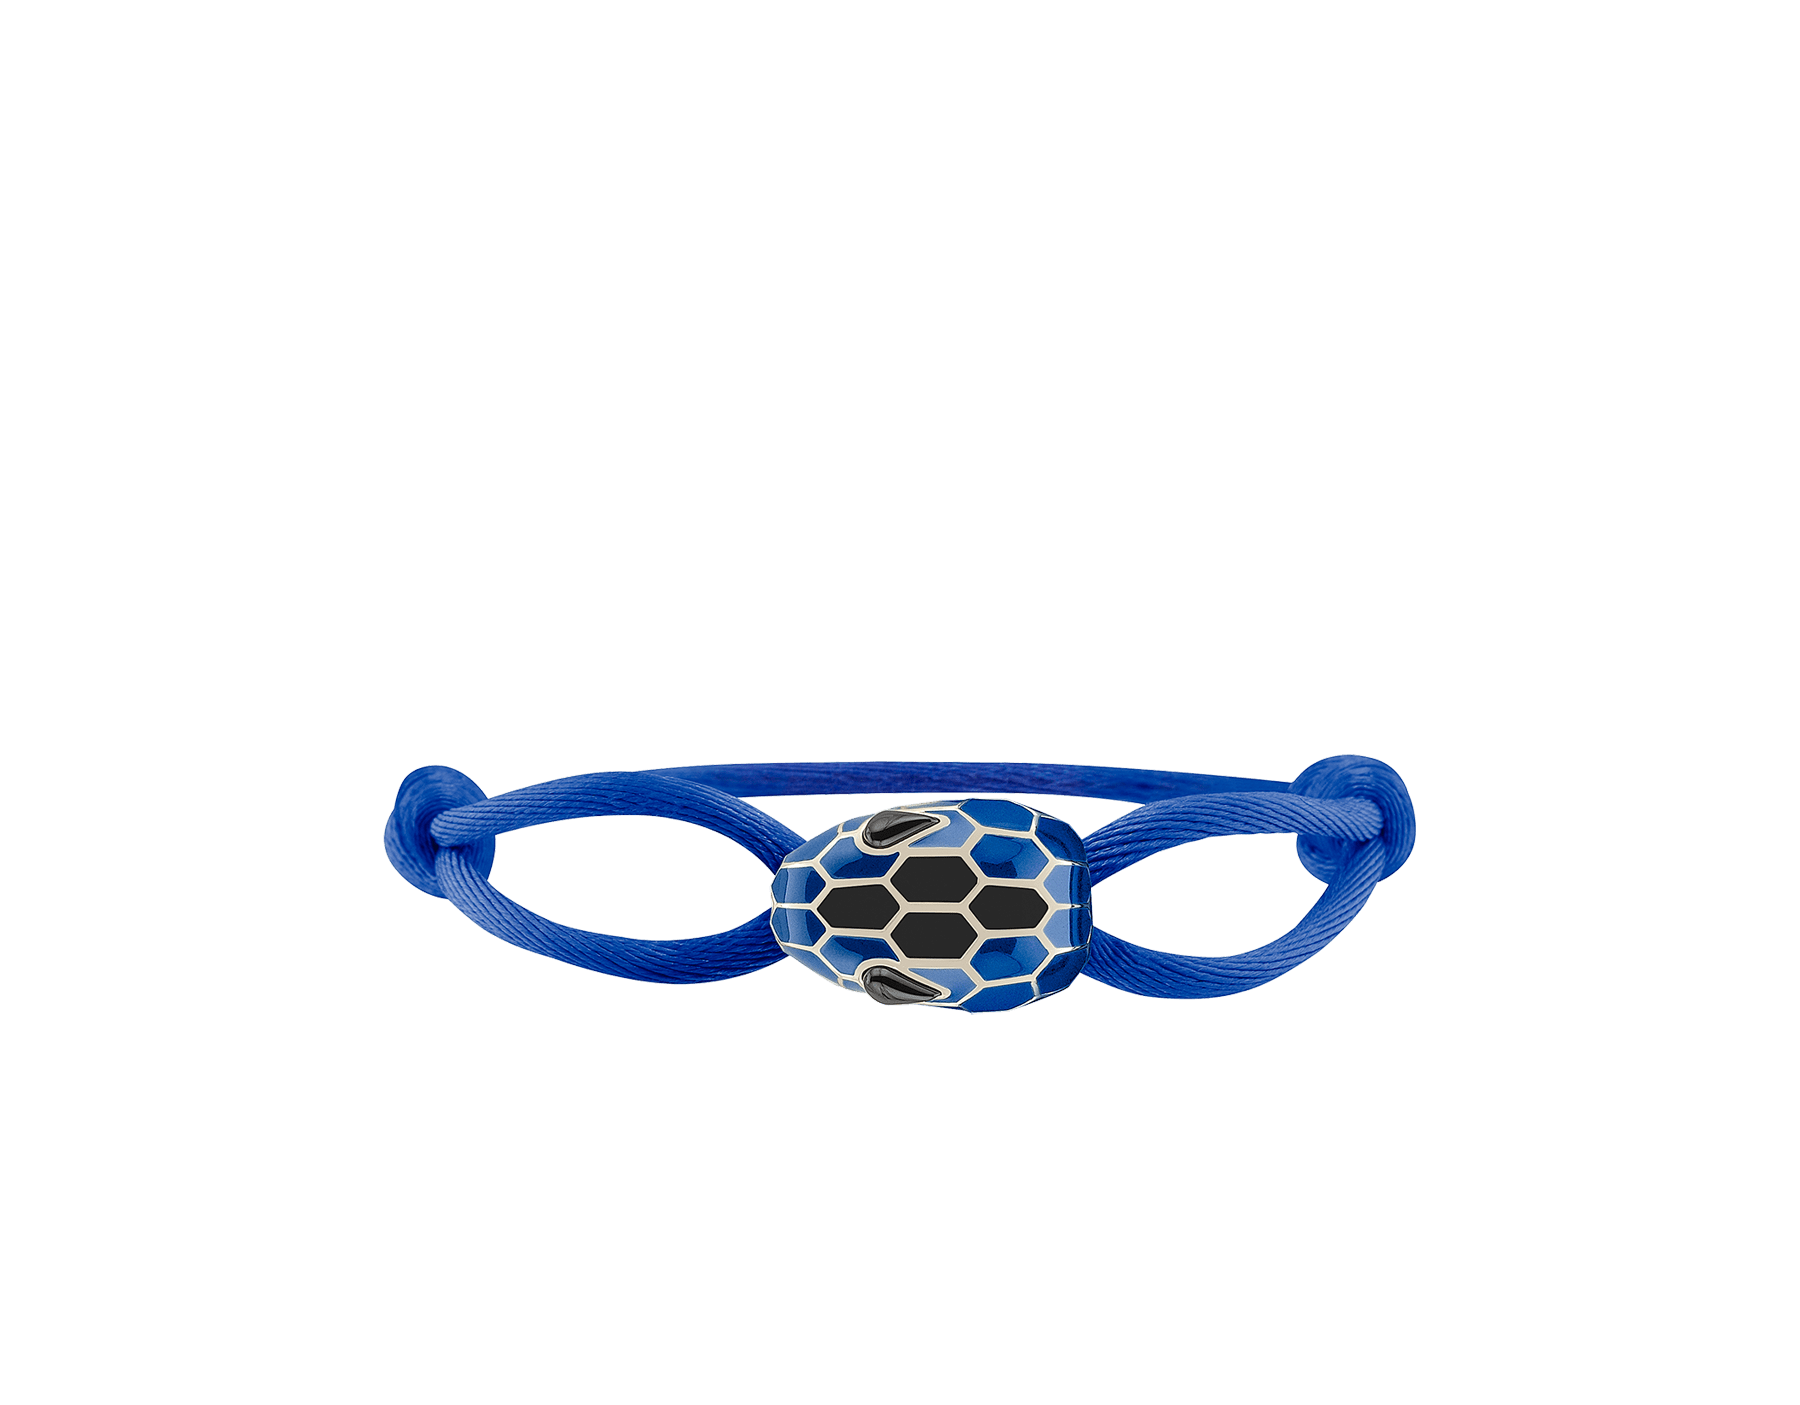 """Serpenti Forever"" bracelet in Cobalt Tourmaline blue fabric with a light gold-plated brass tempting snakehead décor enamelled in Cobalt Tourmaline blue and black, with seductive black enamel eyes. SERP-STRINGd image 1"